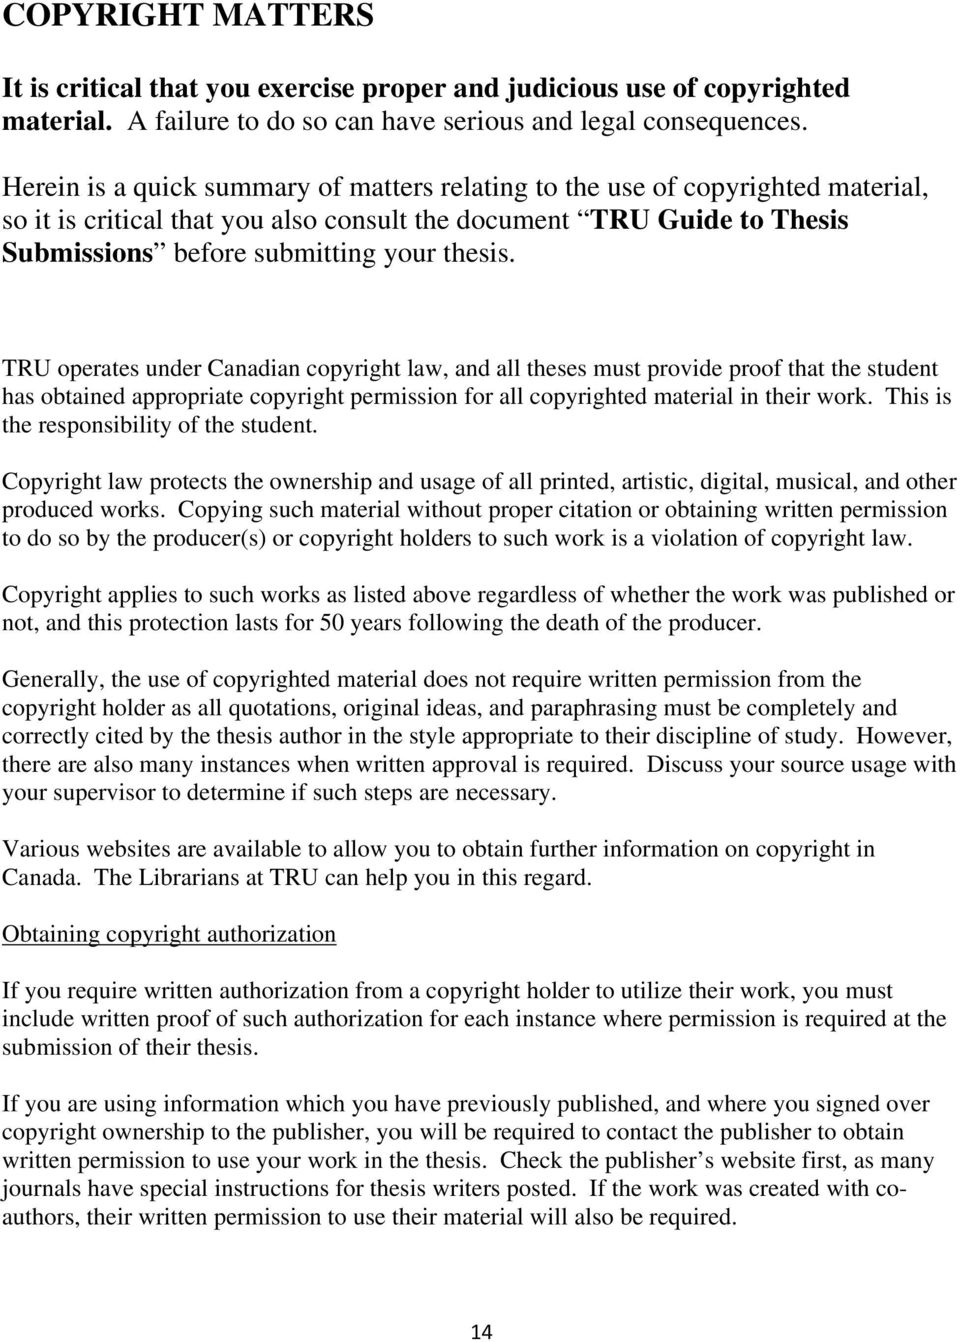 TRU operates under Canadian copyright law, and all theses must provide proof that the student has obtained appropriate copyright permission for all copyrighted material in their work.